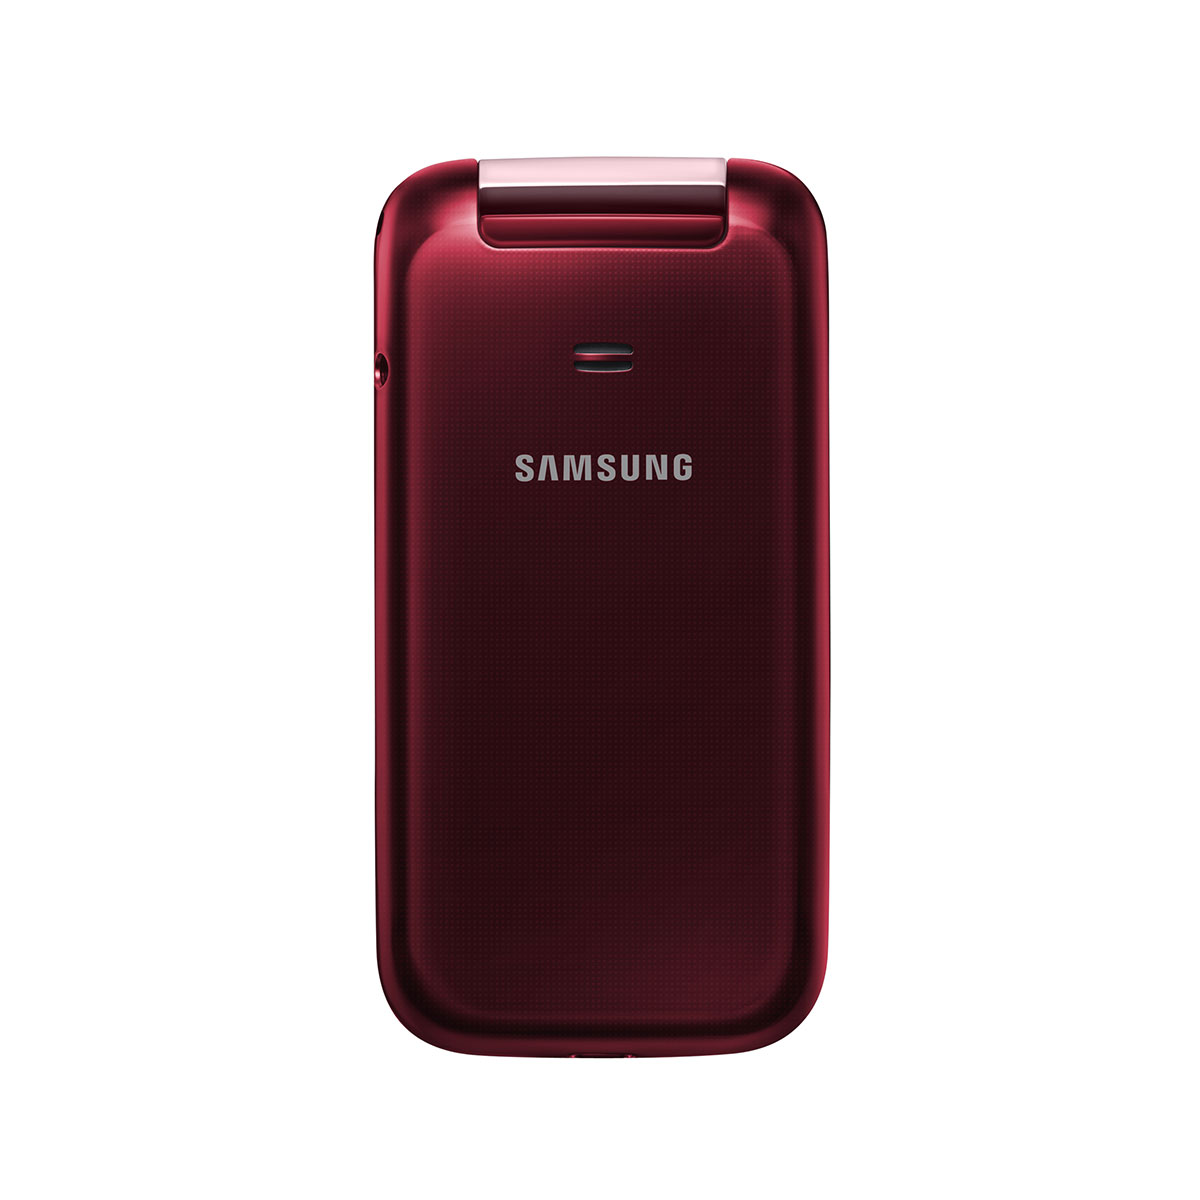 samsung c3590 red wine mobile smartphone samsung sur. Black Bedroom Furniture Sets. Home Design Ideas